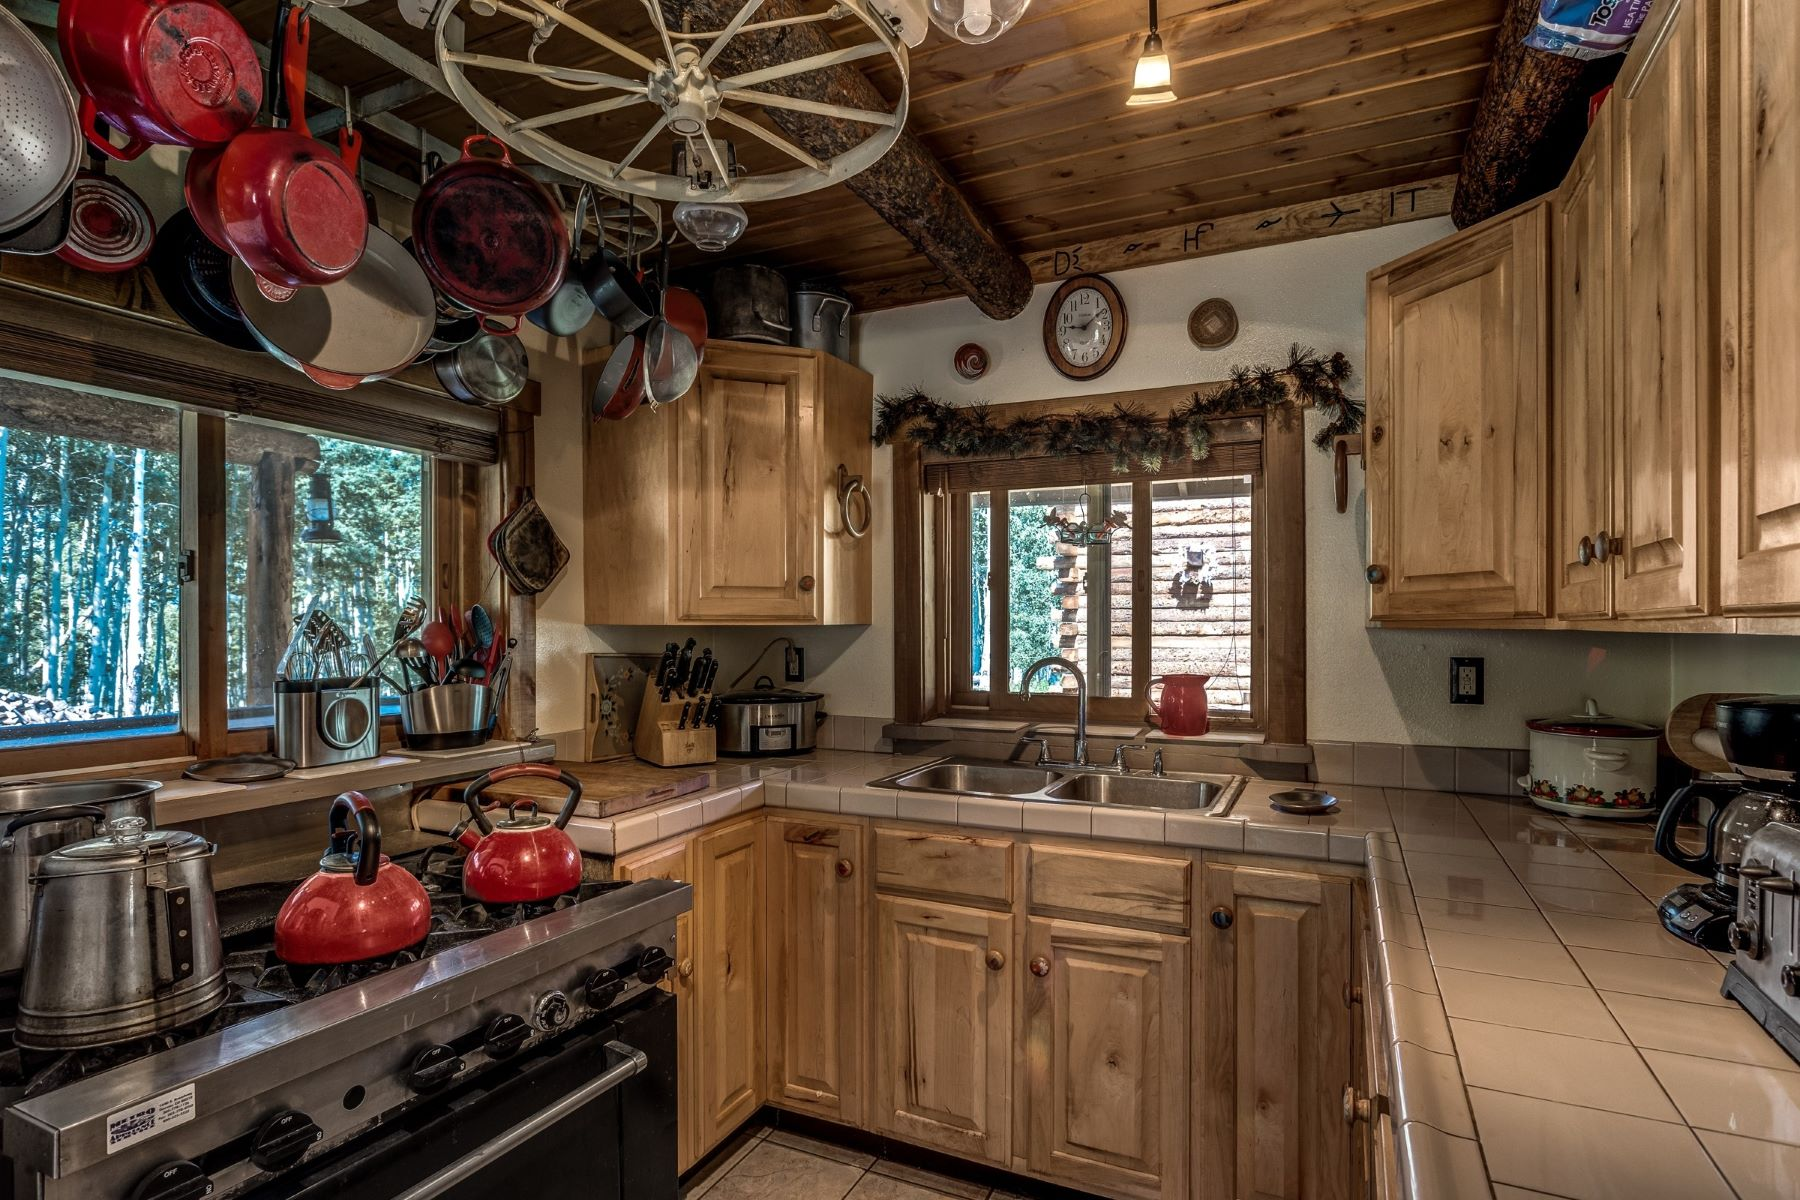 Additional photo for property listing at Dunkley Peak Ranch 10005 County Road 29 Hayden, Colorado 81639 United States